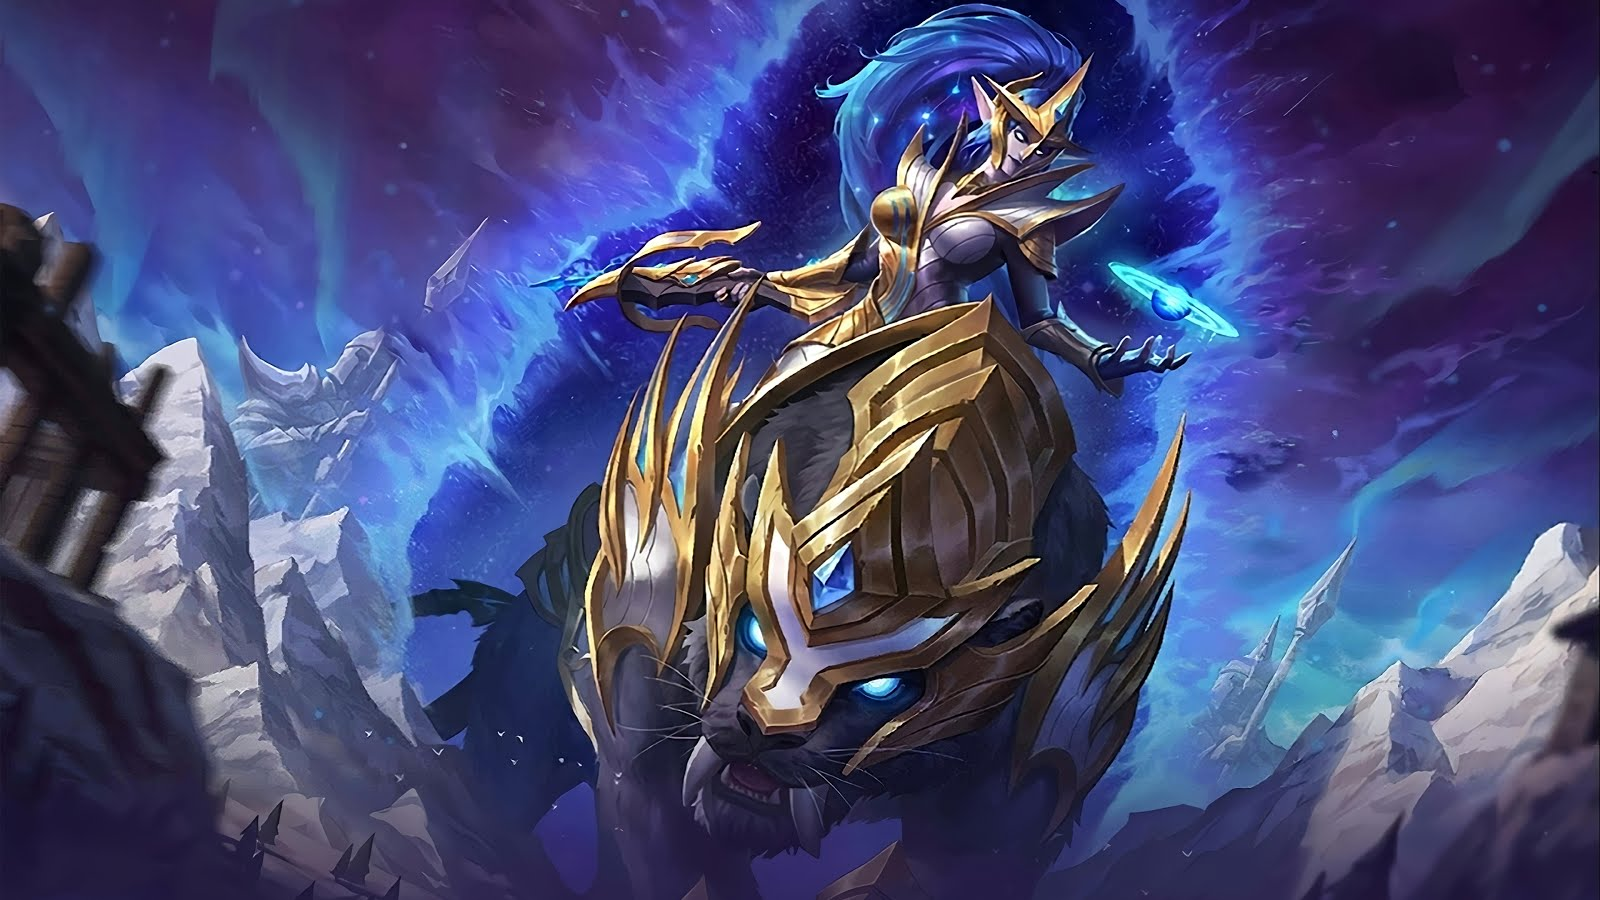 Mobile Legends Wallpapers HD: ALL ZODIAC SKINS WALLPAPERS HD